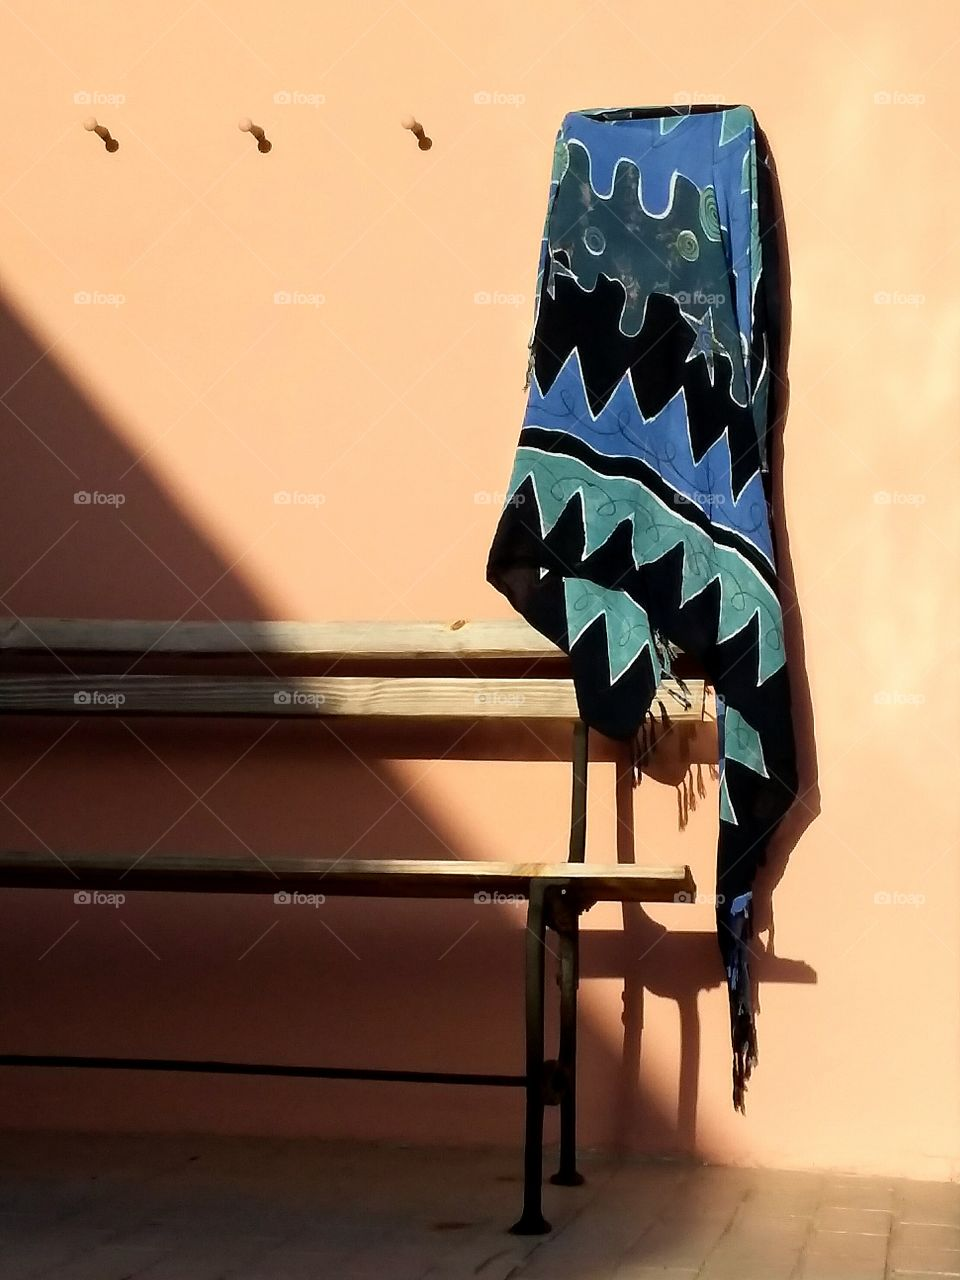 Close-up of towel hanging on wall